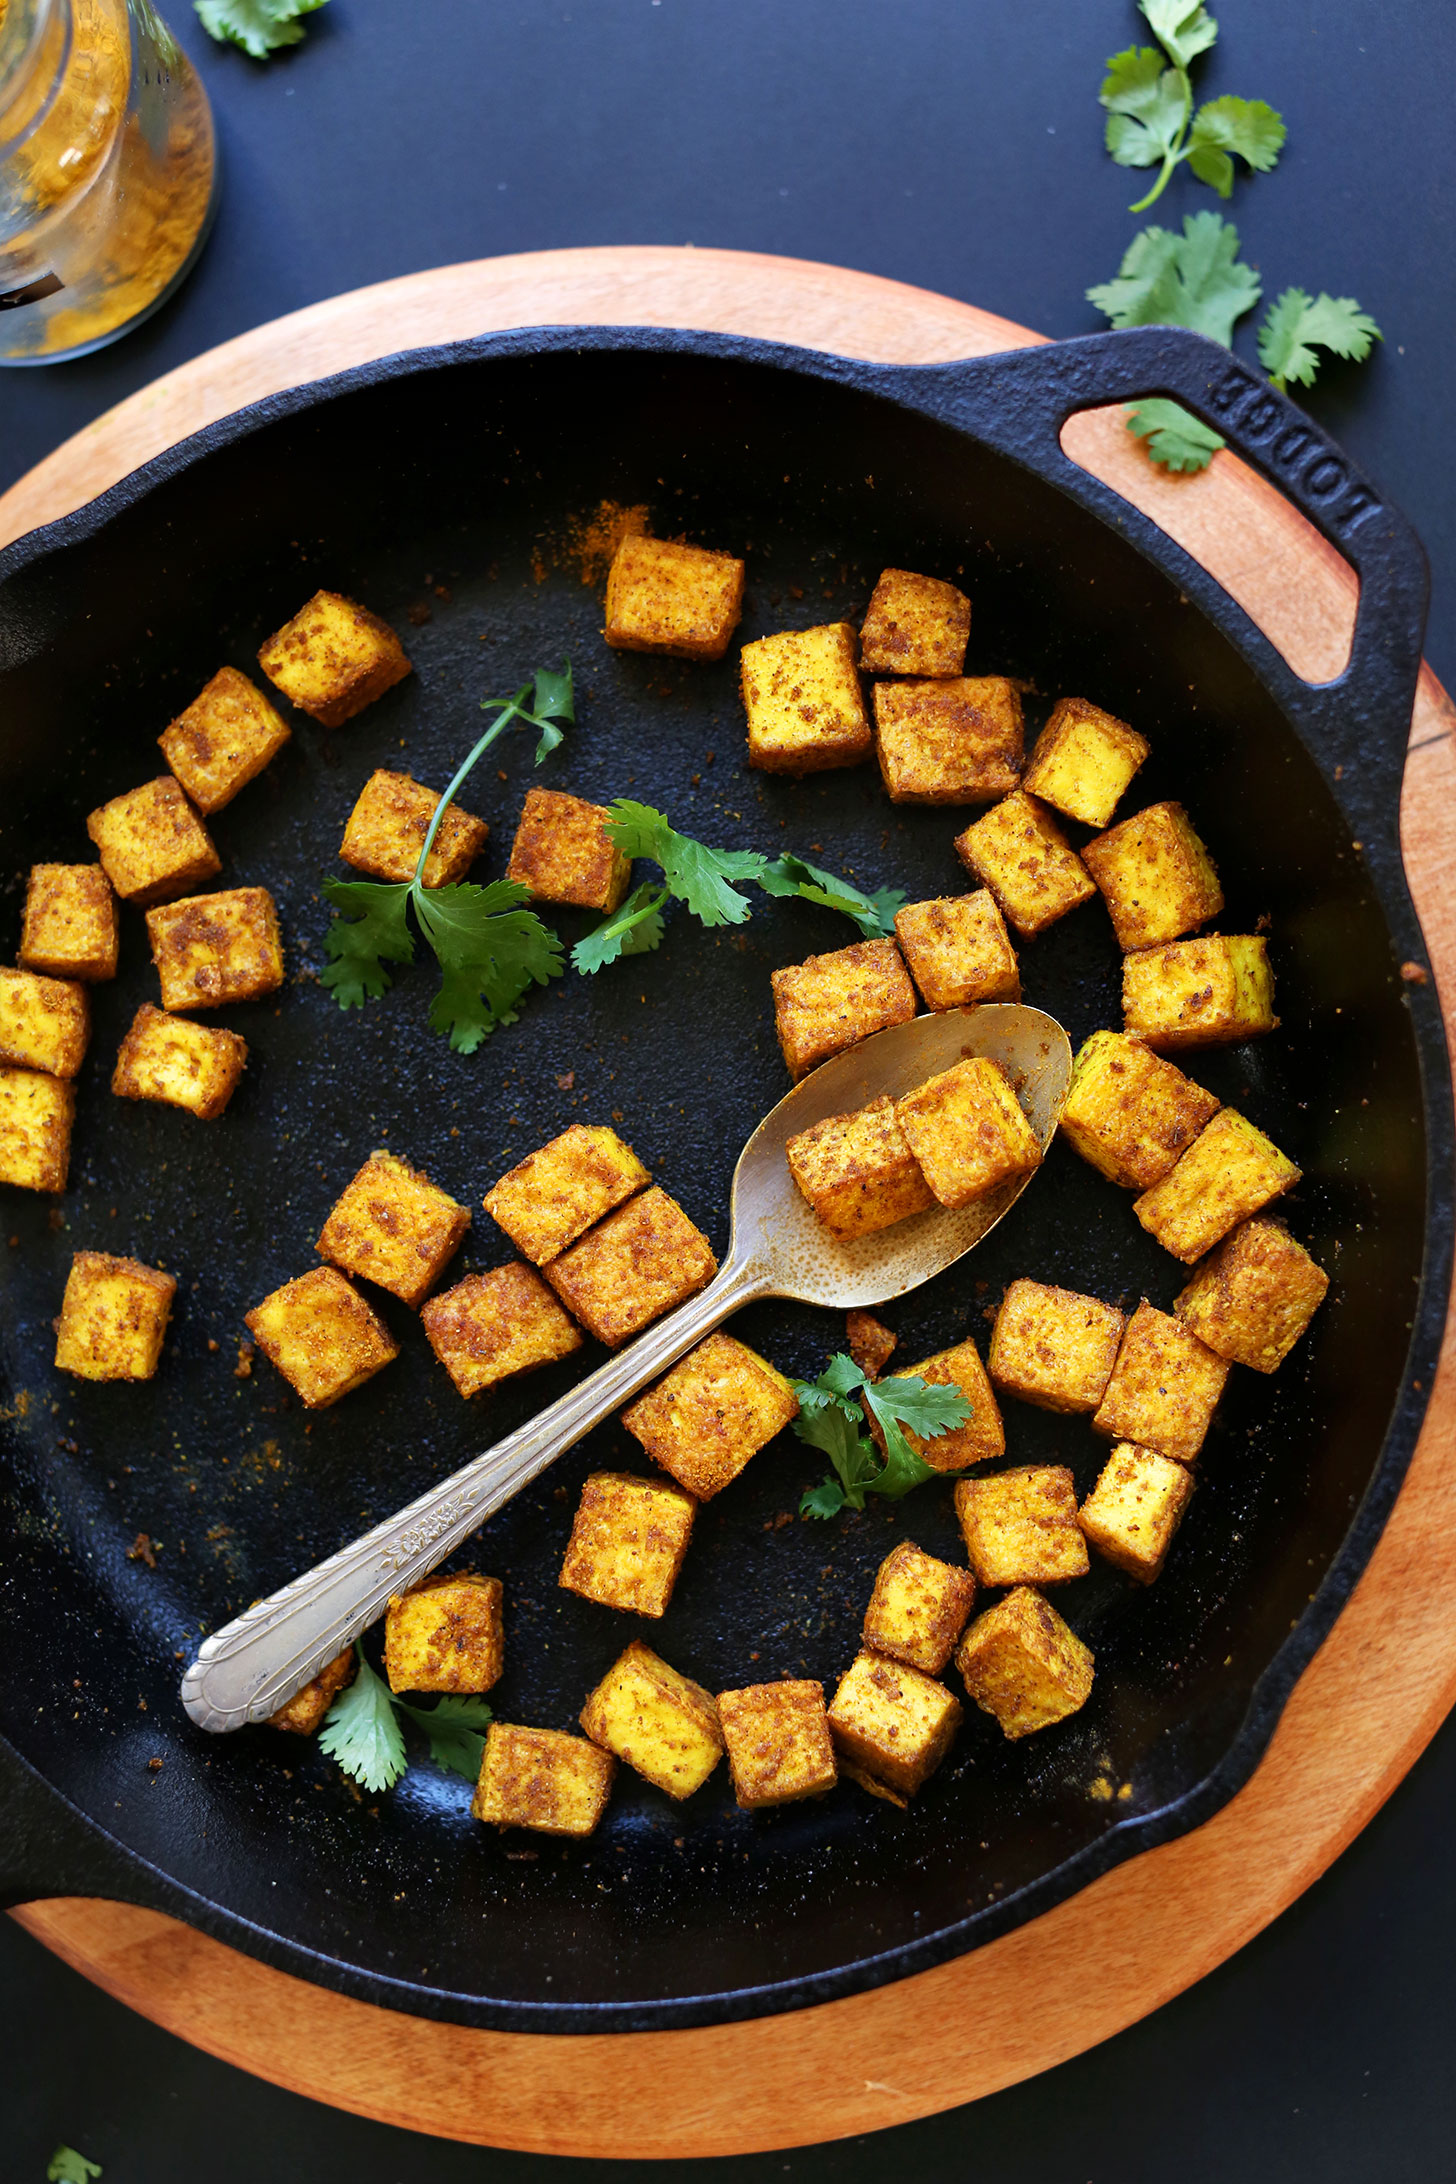 Grabbing a spoonful of Crispy Tofu from a skillet for an easy plant-based meal